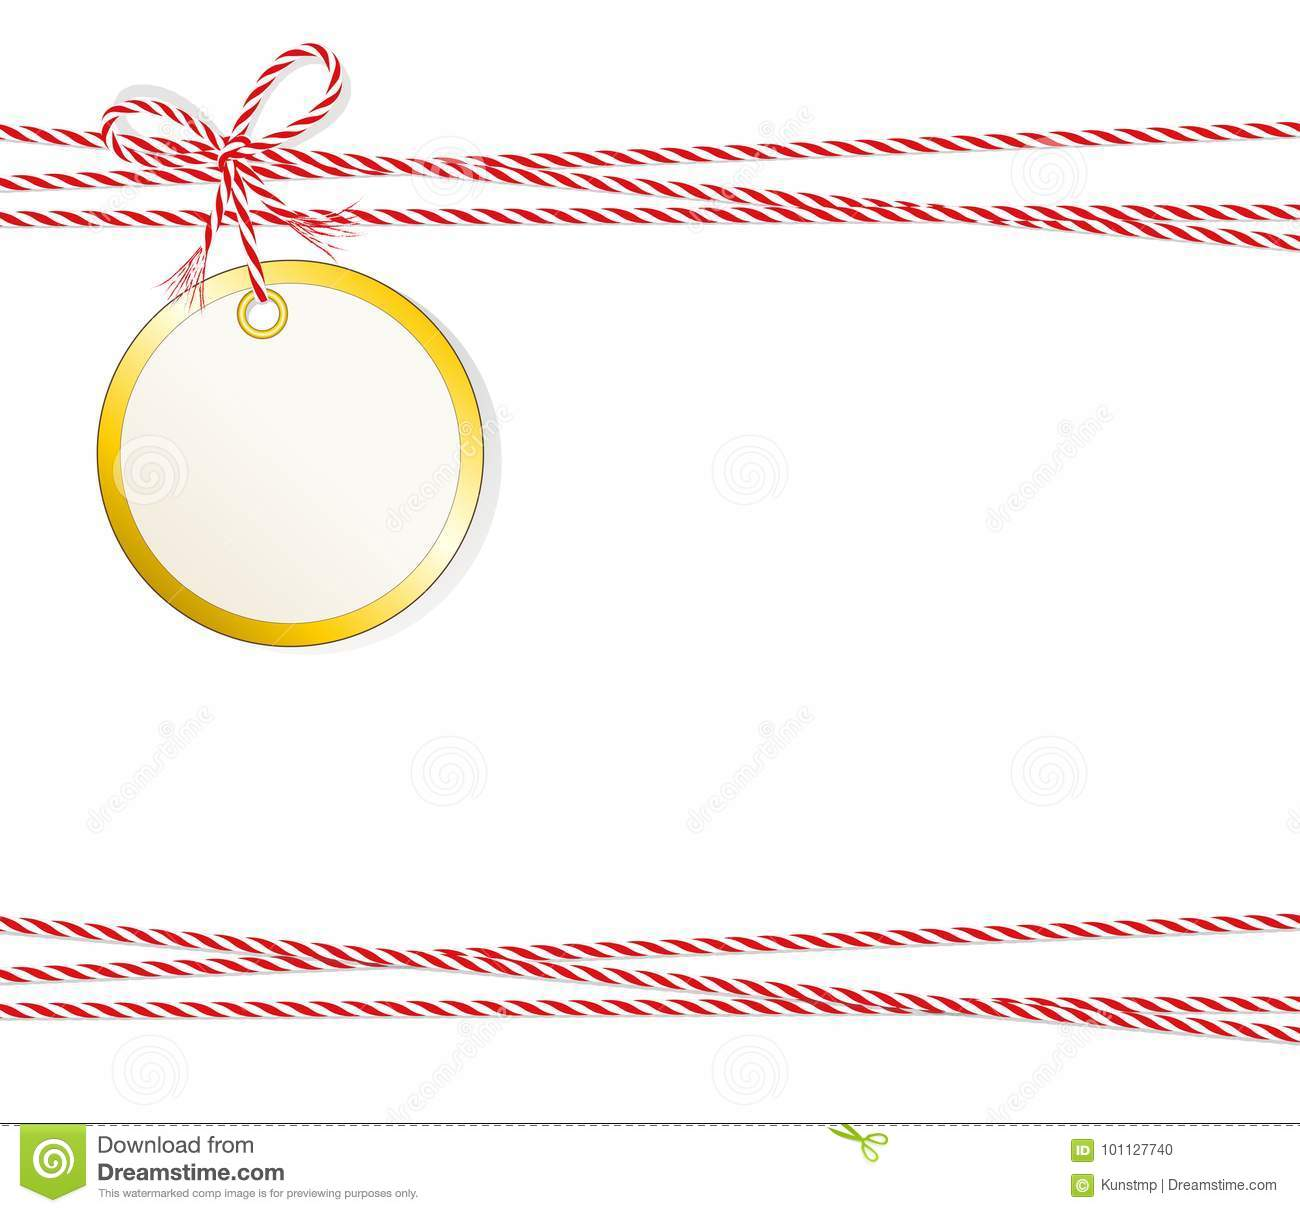 christmas card round gift label with golden edging and cord tape